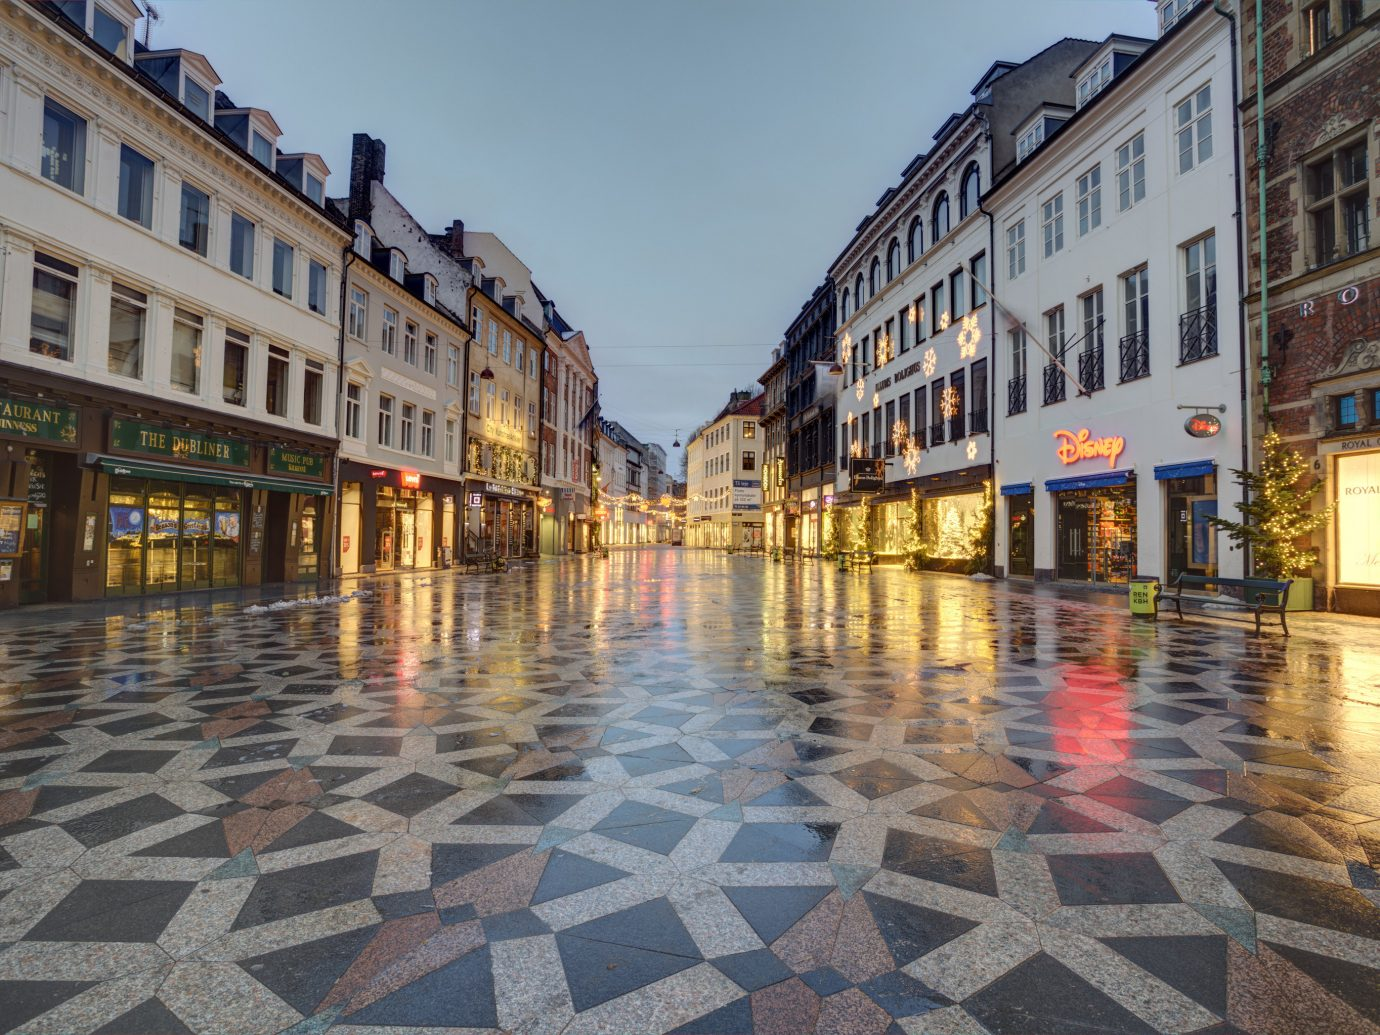 Copenhagen Denmark Trip Ideas Town reflection water City town square street sky evening building tourist attraction road surface Downtown facade plaza pedestrian mixed use cobblestone road